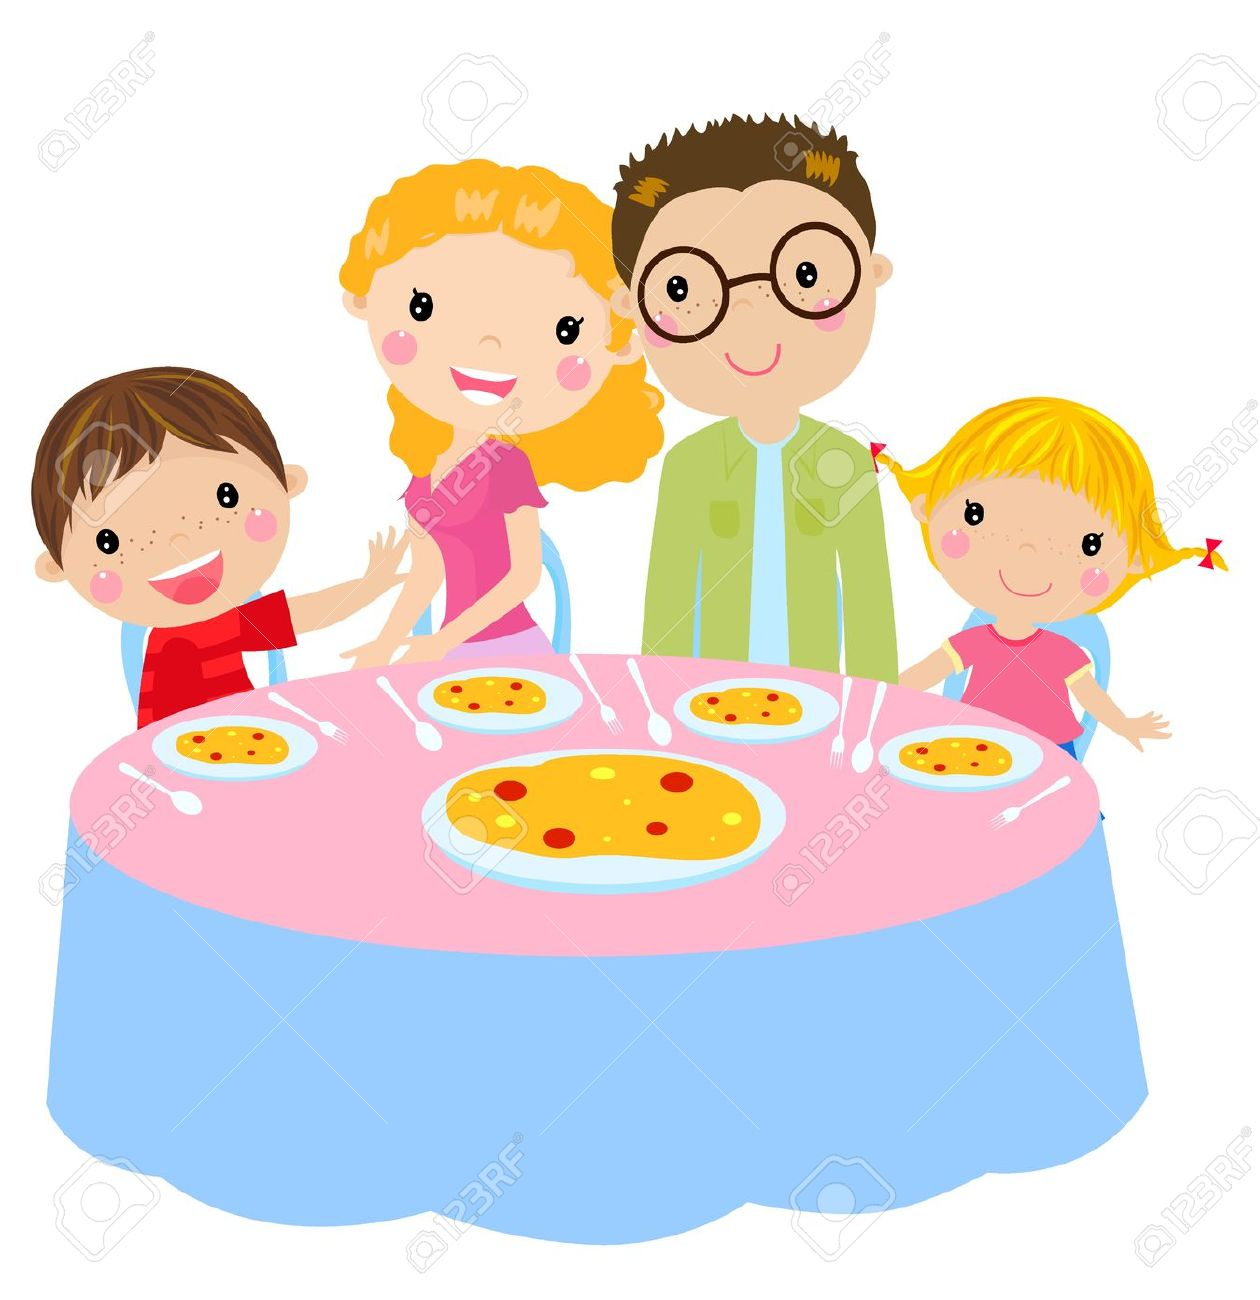 Eating look at clip. Feast clipart family time